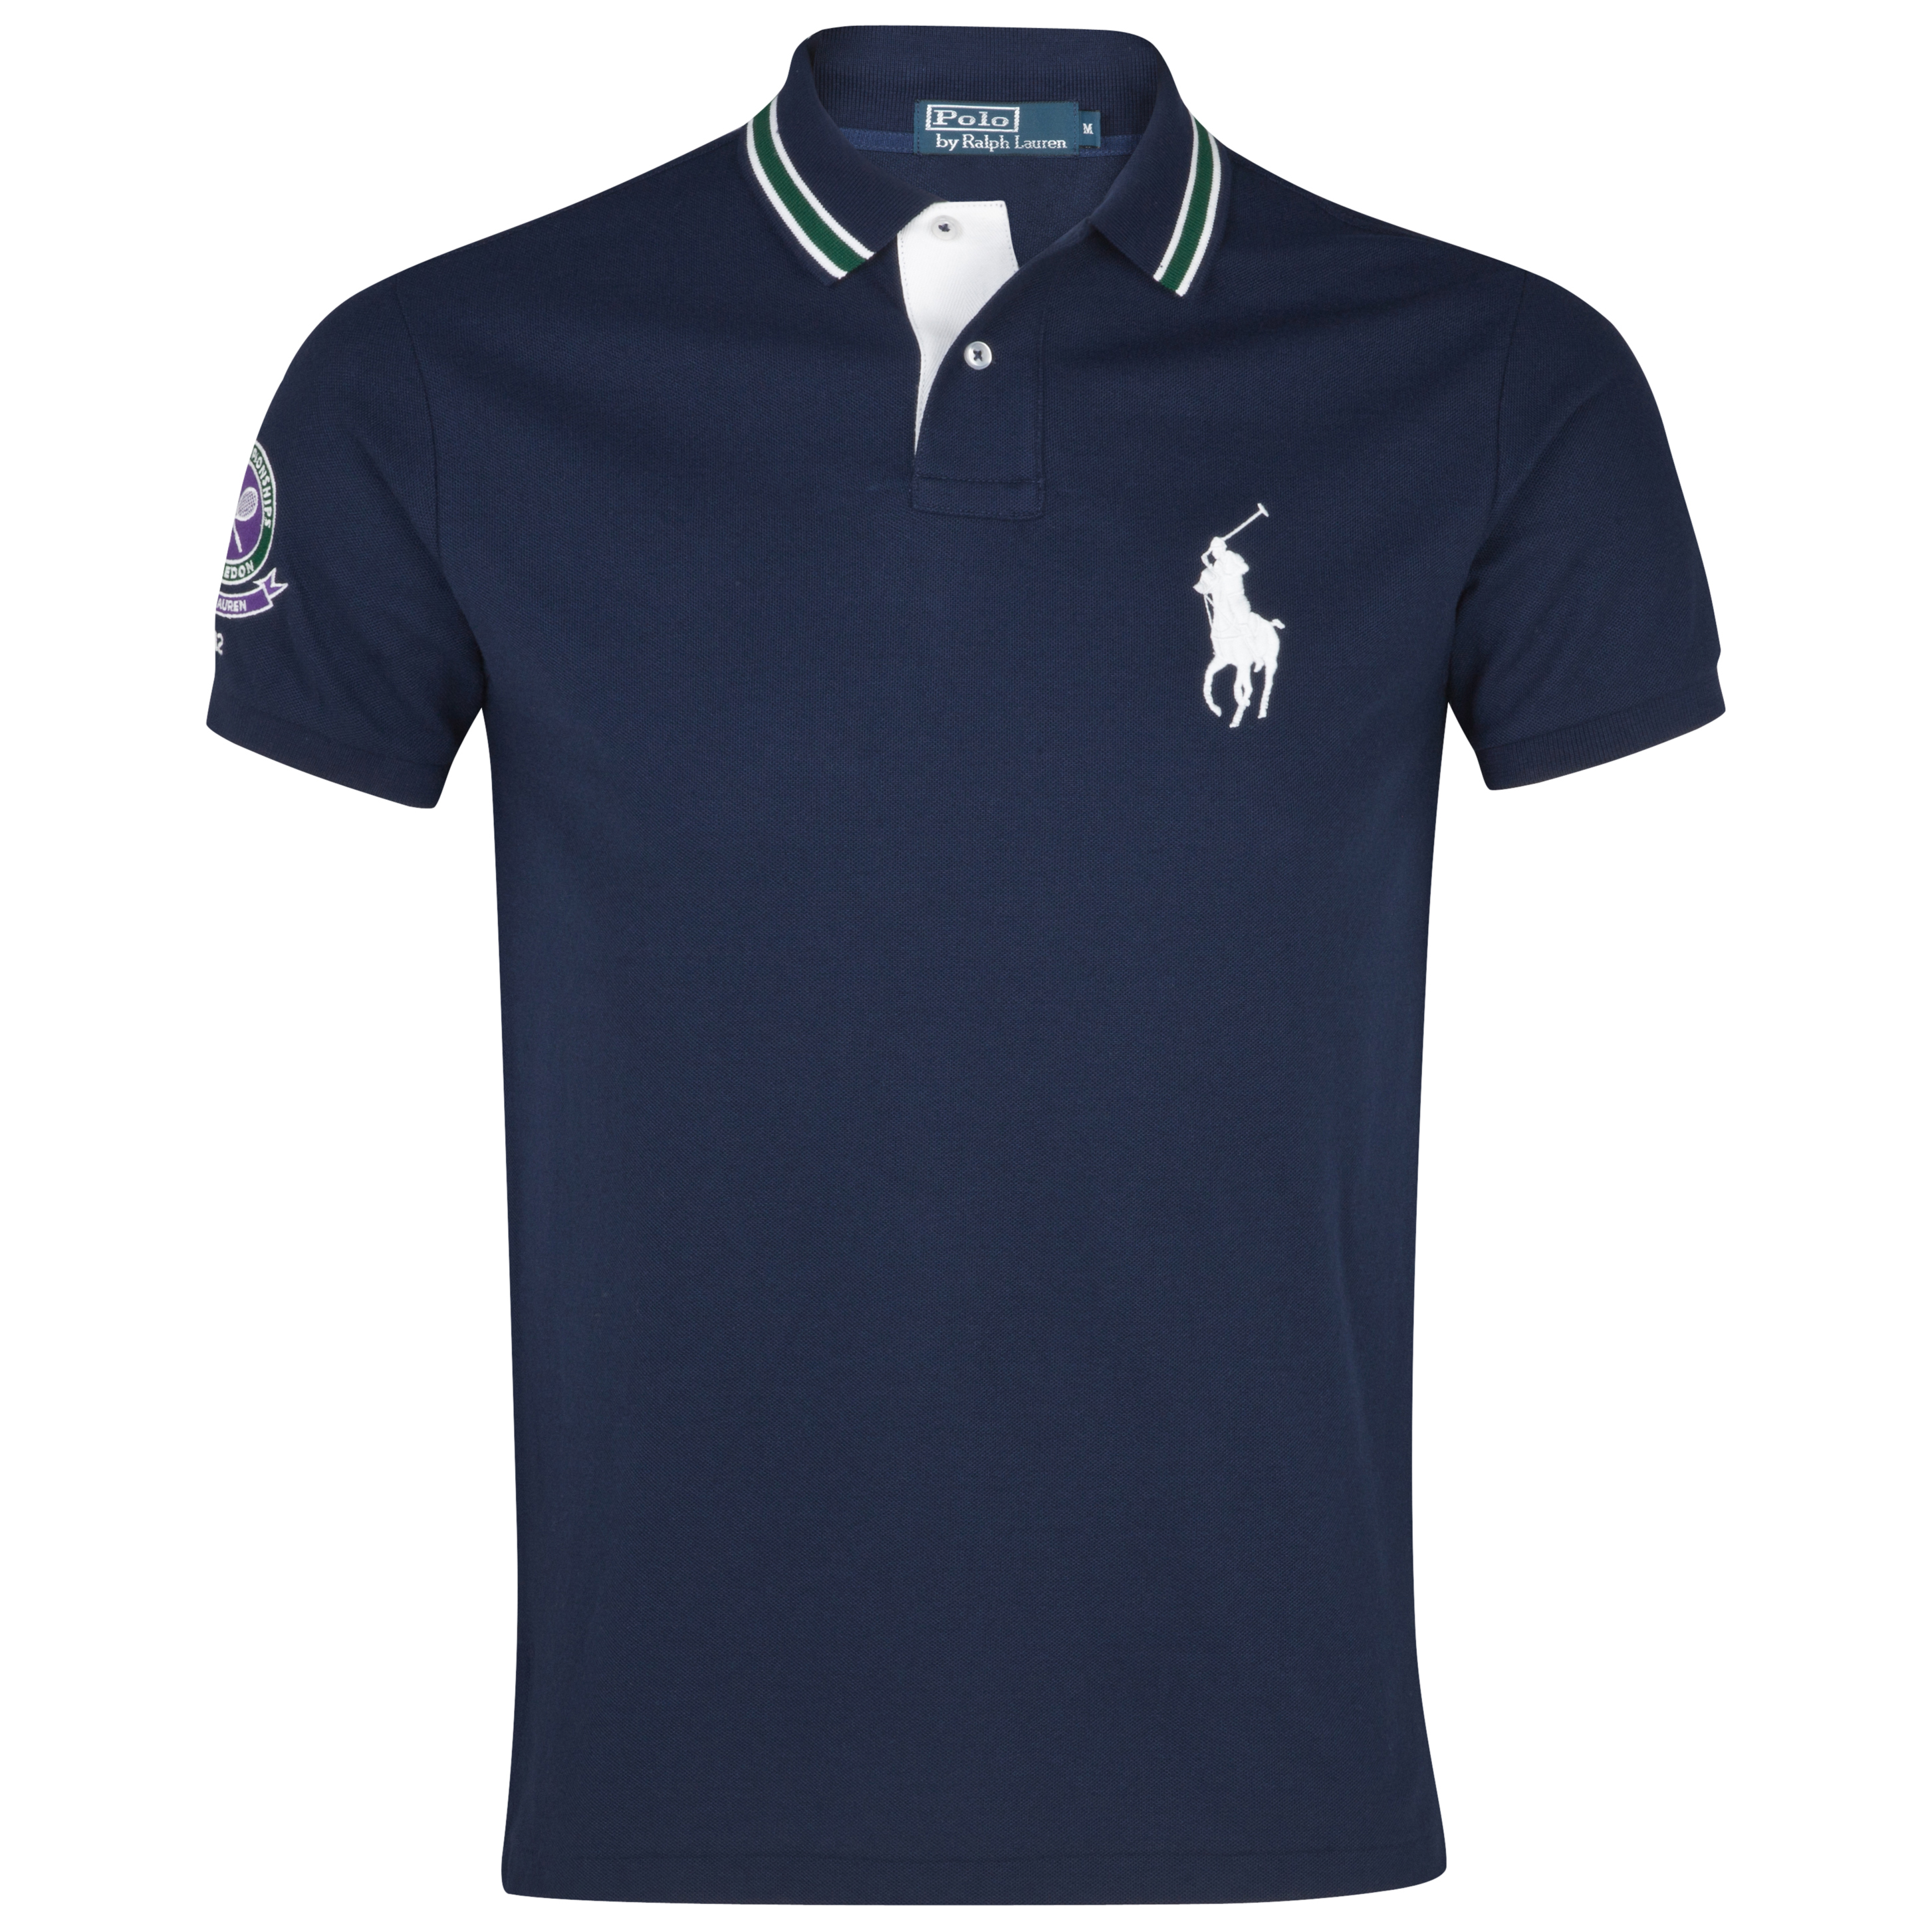 Polo Ralph Lauren Wimbledon Ball Boy Cotton Pique Polo - French Navy - Boys